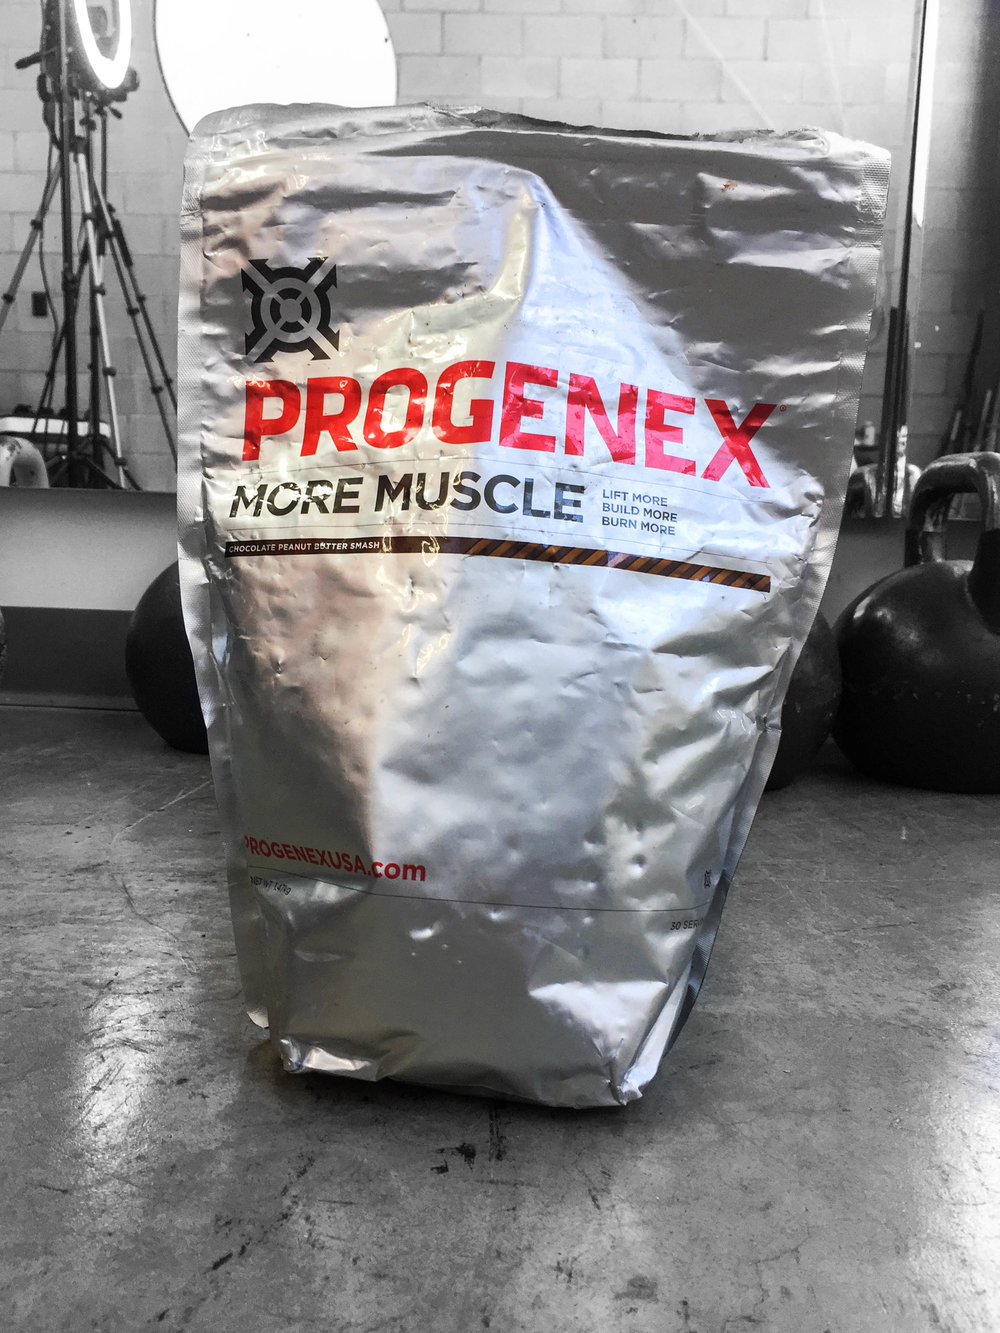 Progenex More Muscle - http://amzn.to/2moh7zf